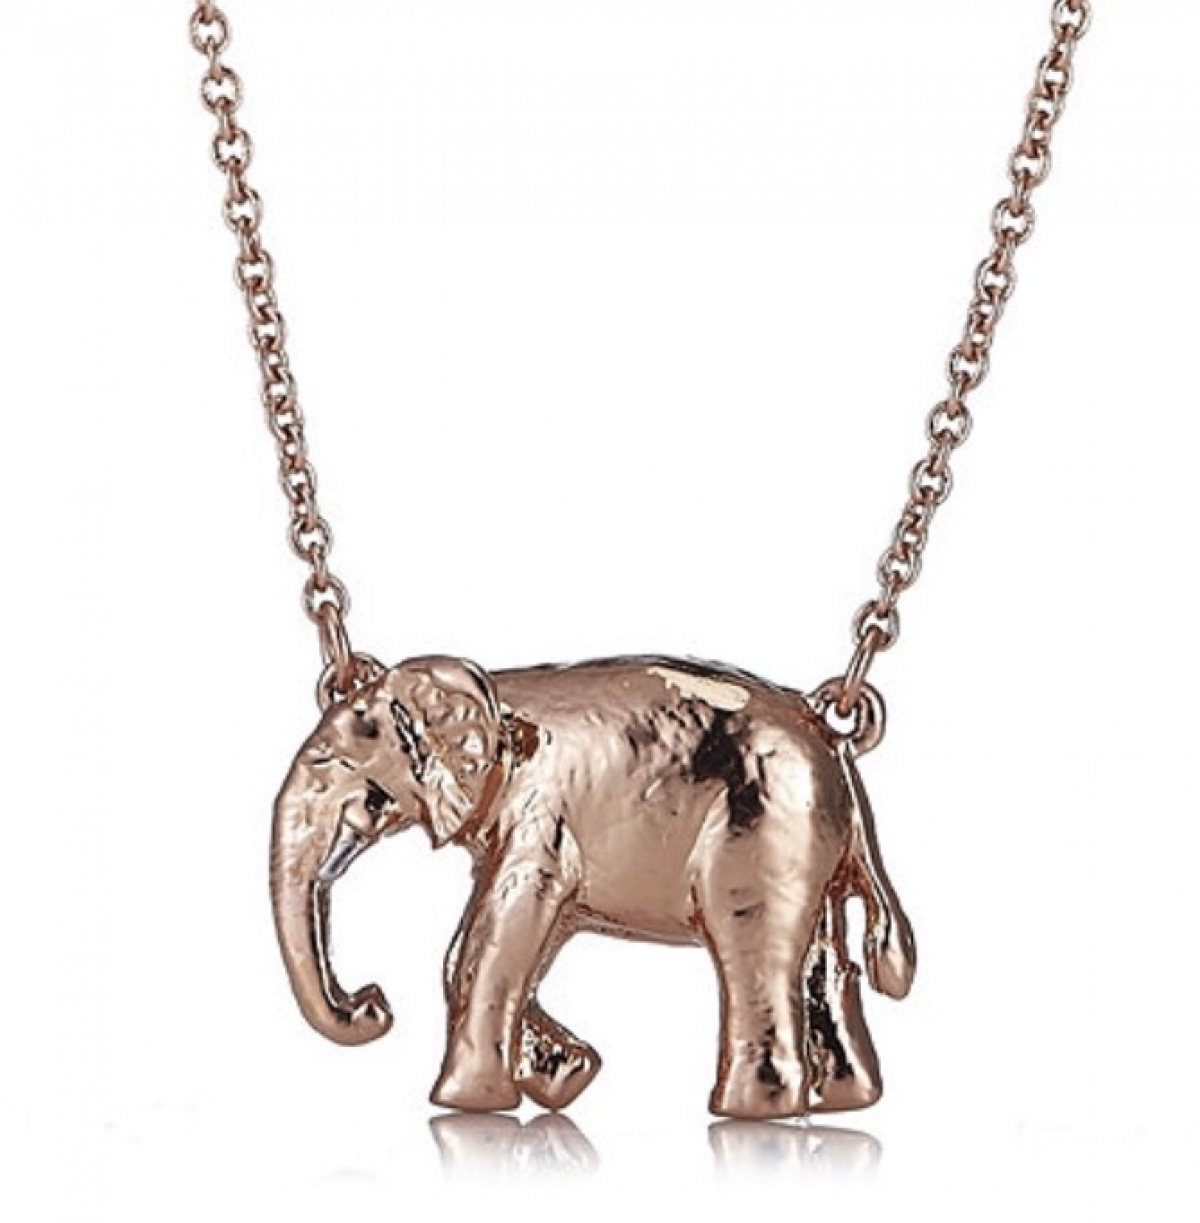 front pendant patrick zozo products necklace elephant silver large and heart chain mavros